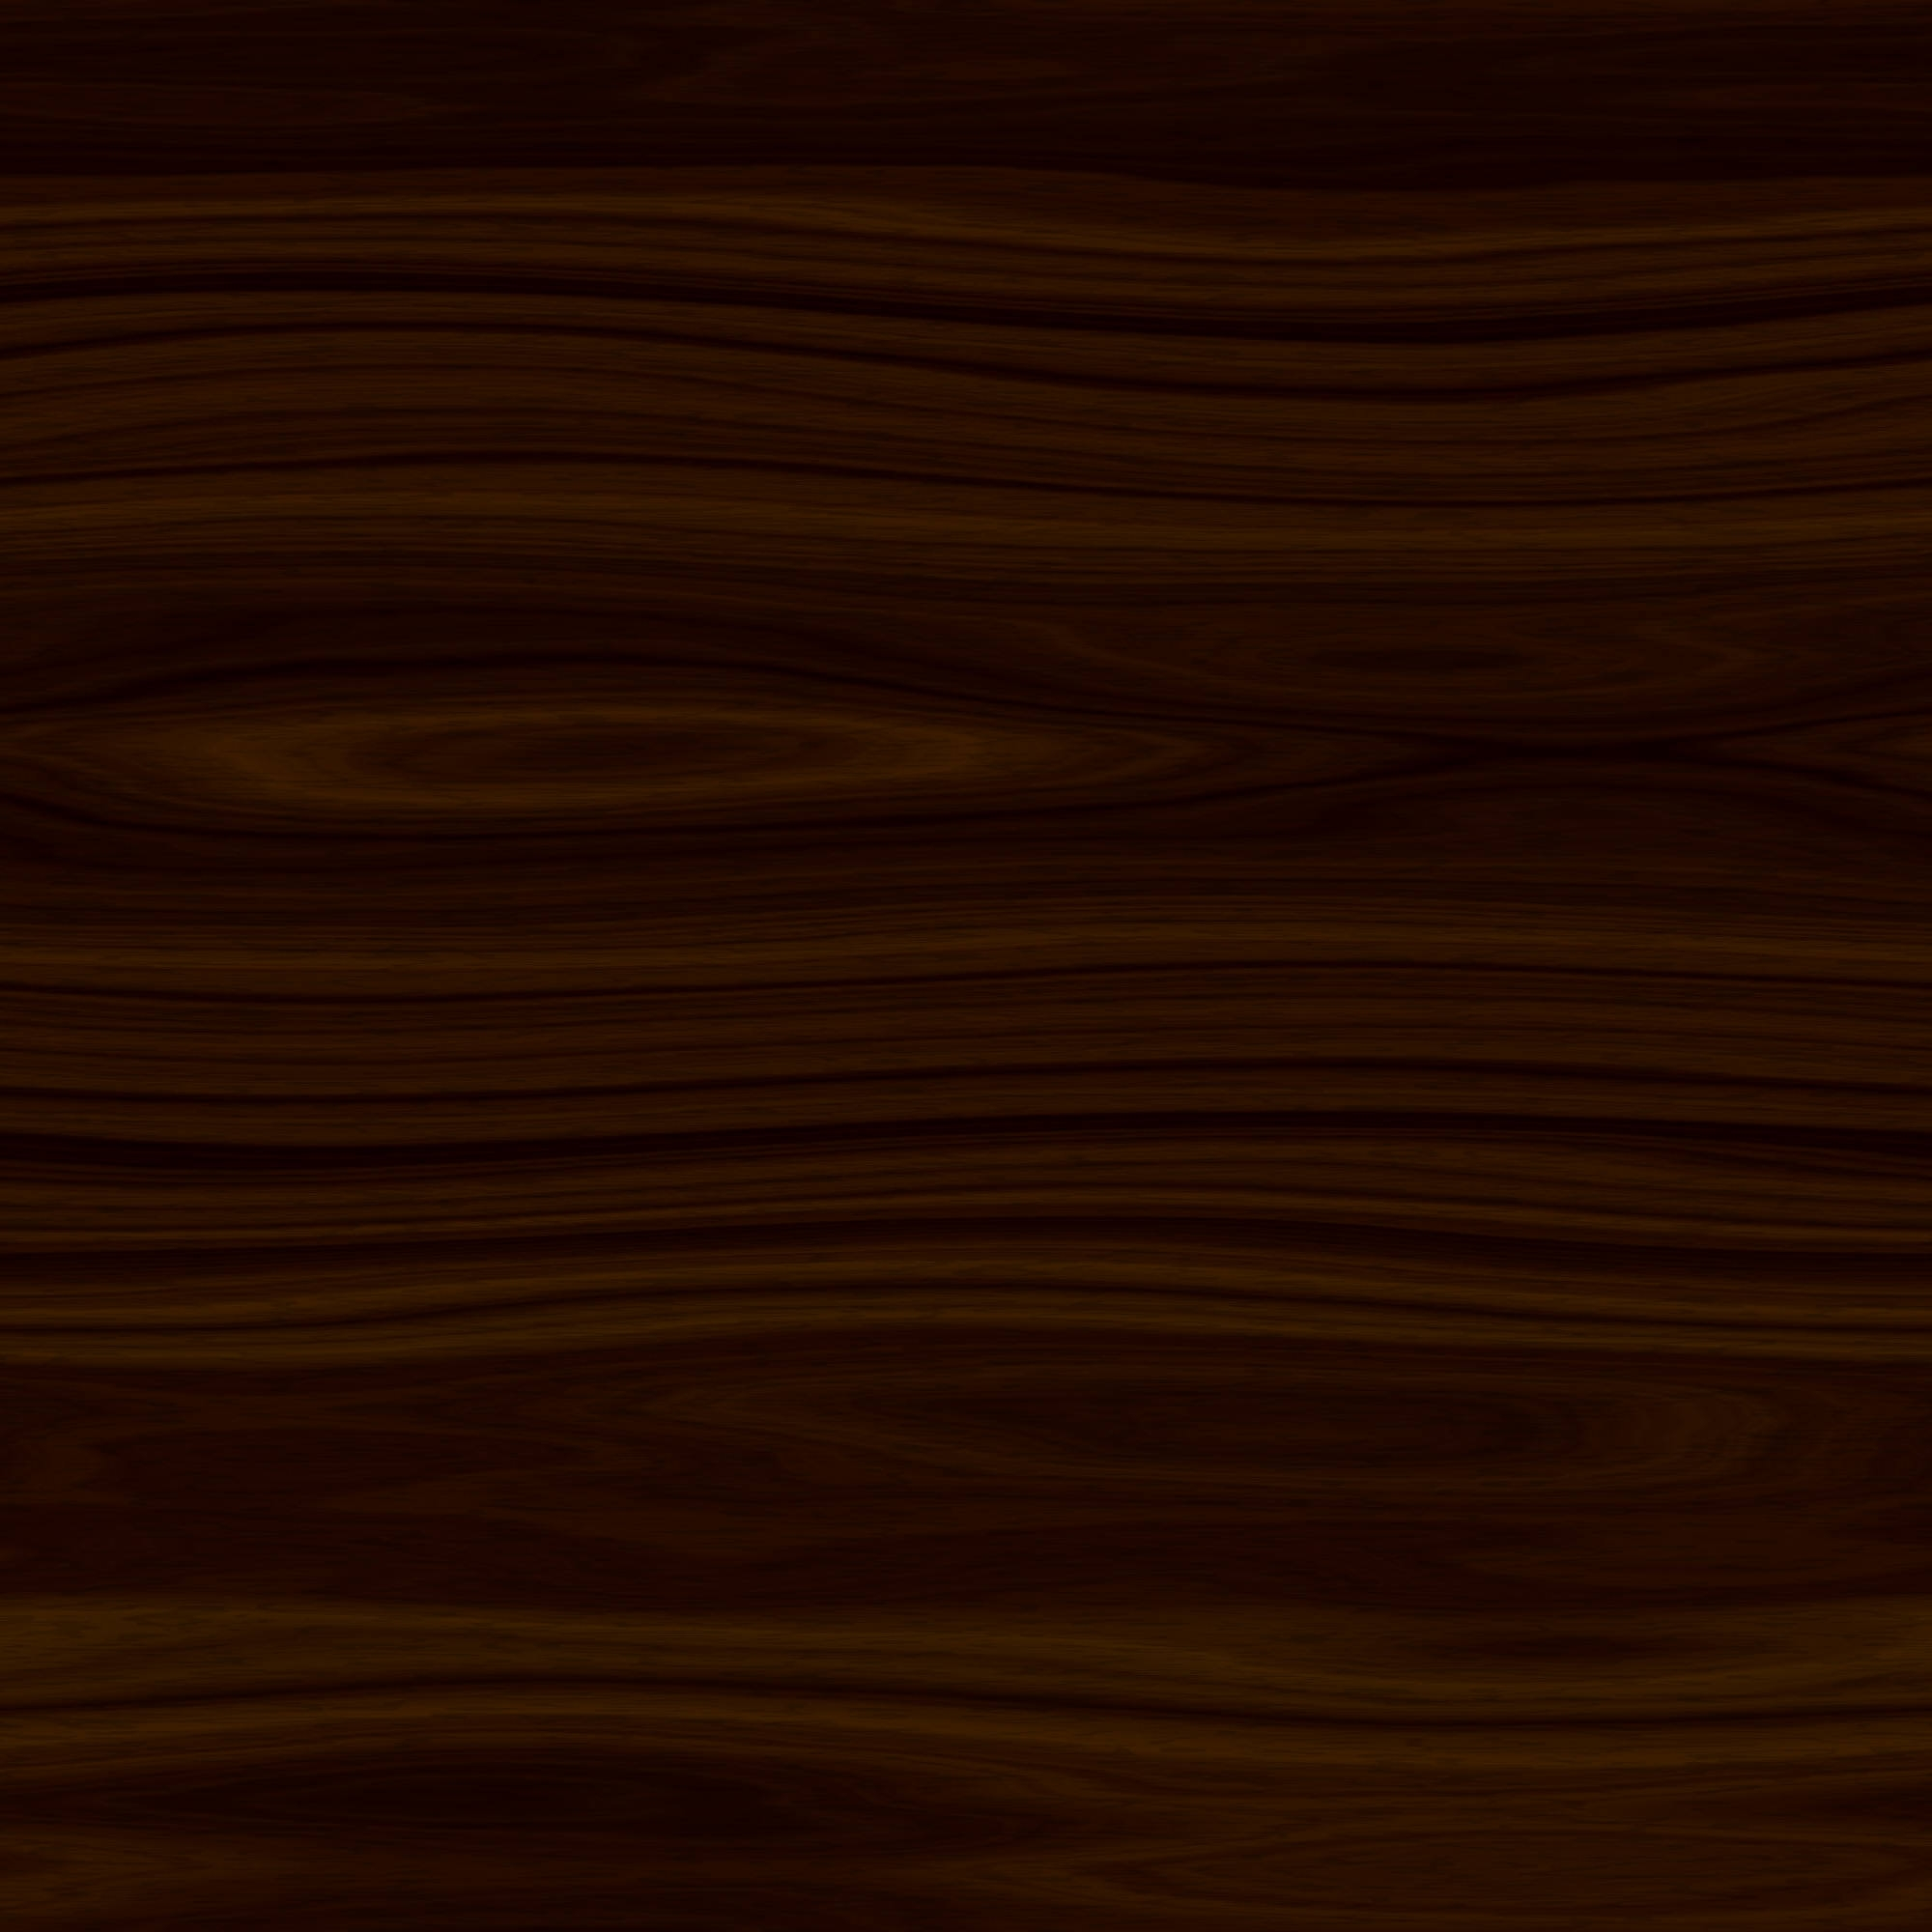 Dark and Deep Seamless Wood Background Texture